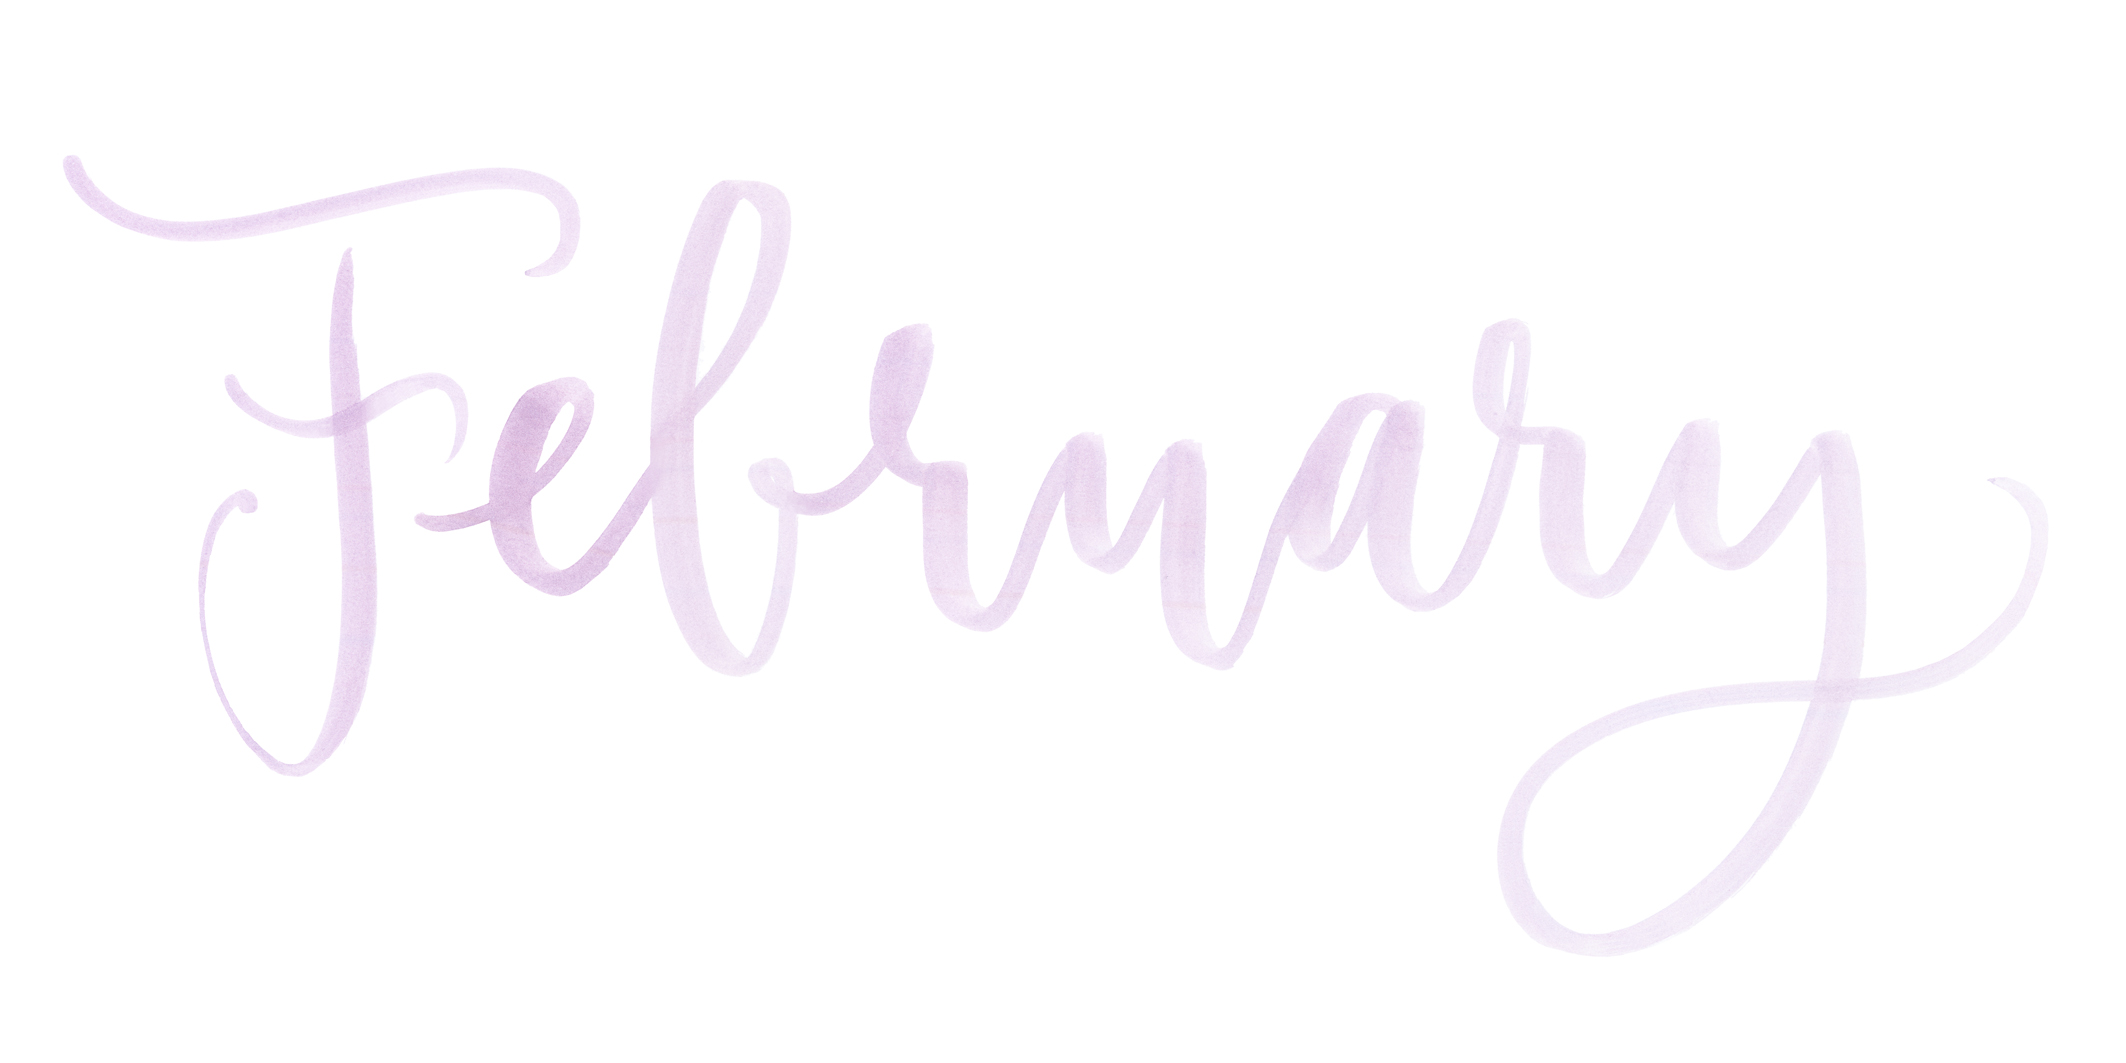 Month February watercolor lettering